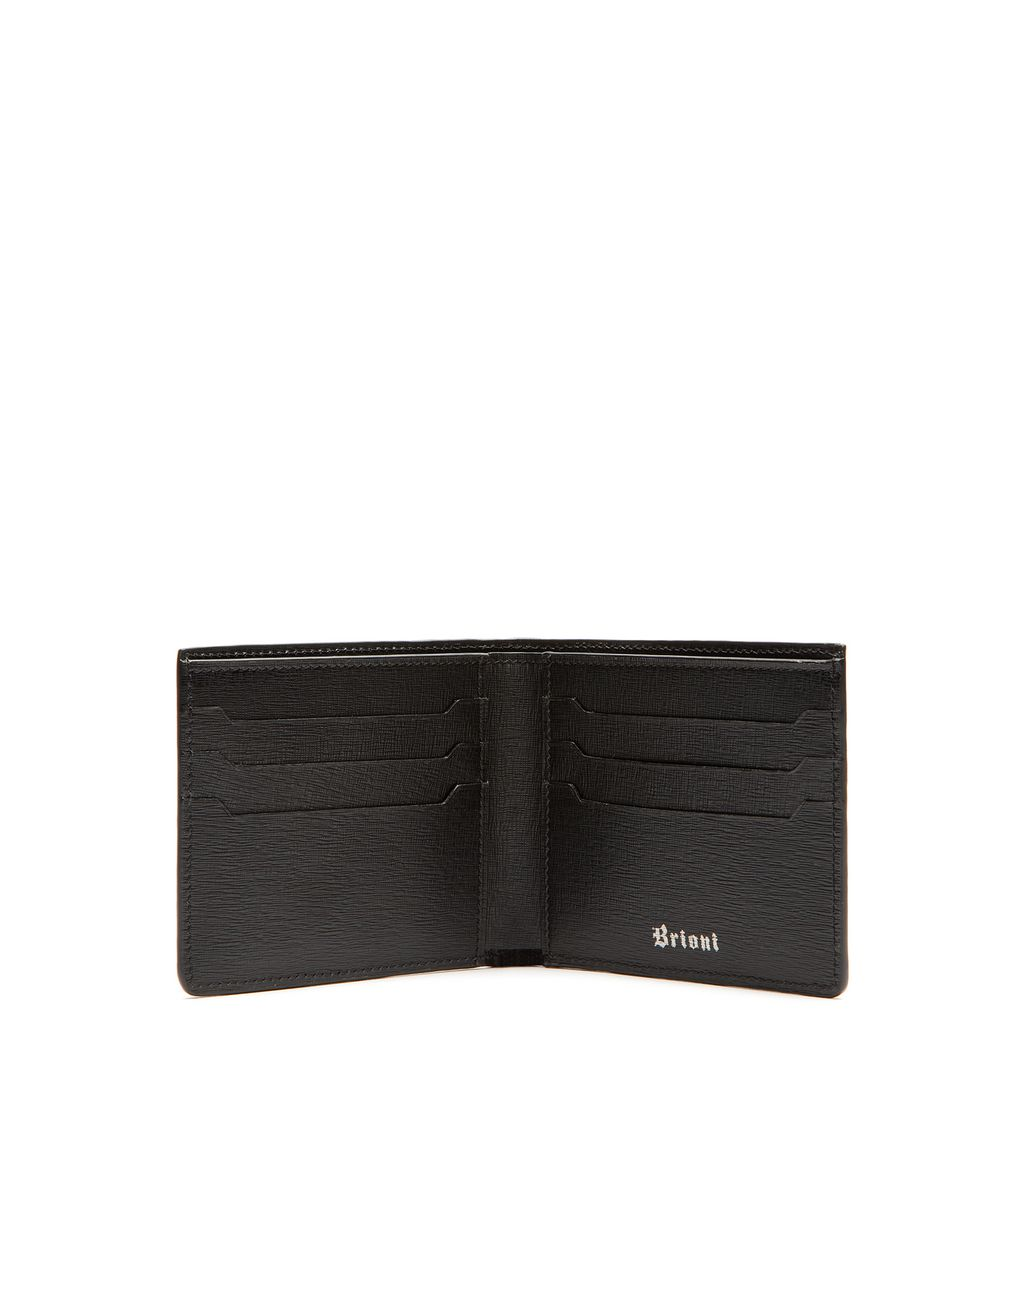 BRIONI Cognac Alligator Slim Wallet Leather Goods Man d